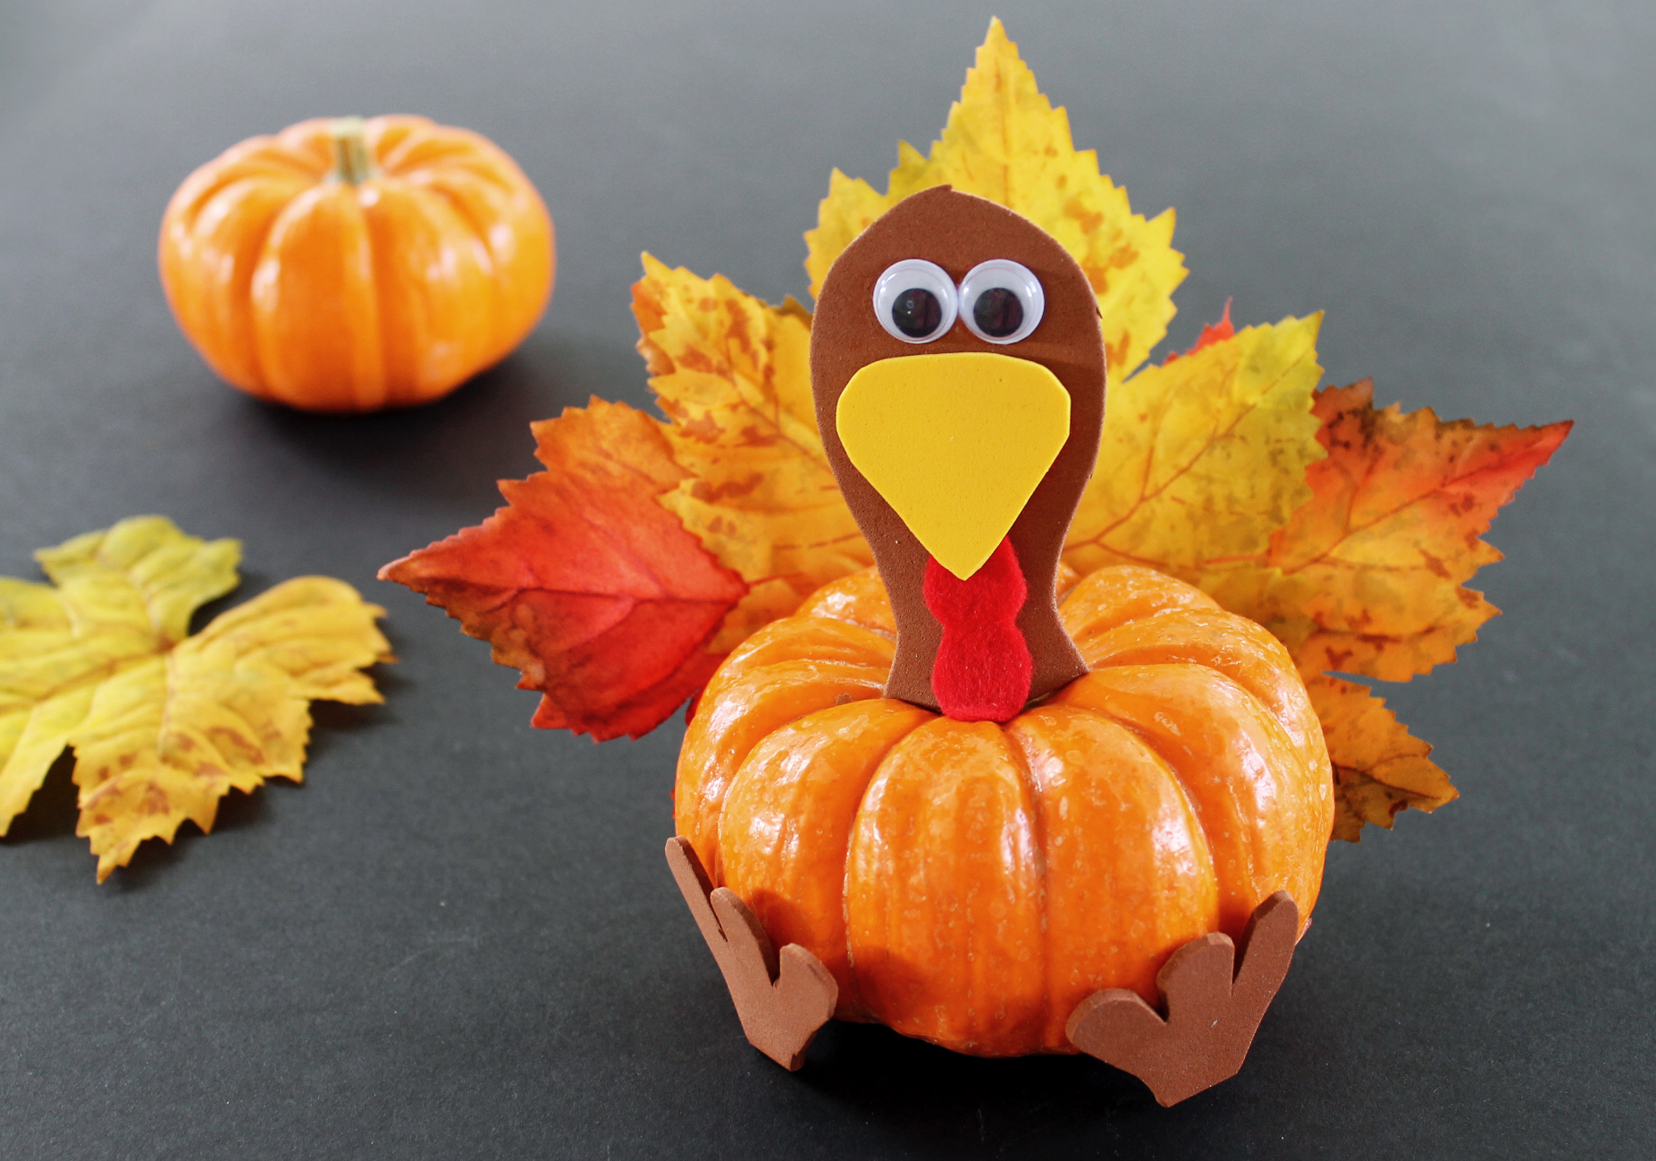 Pumpkin turkey thanksgiving craft for kids growing up